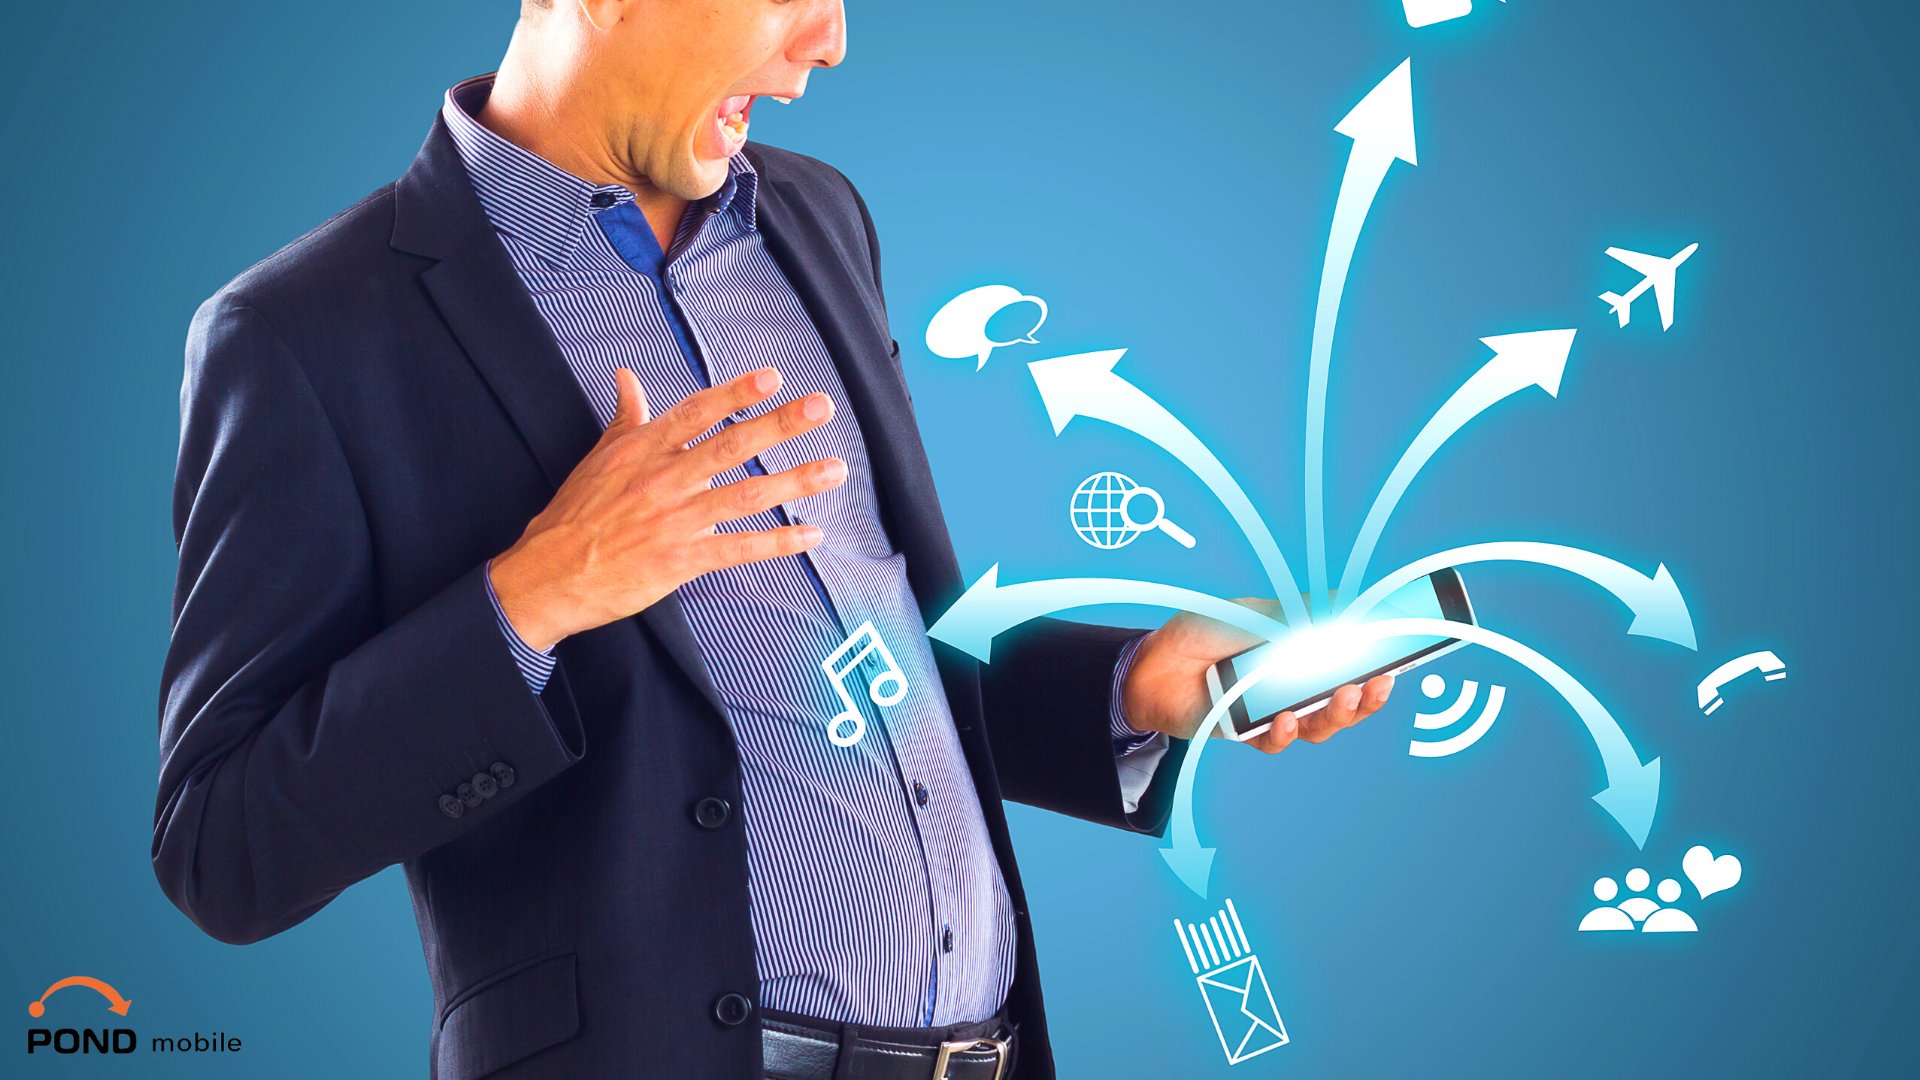 Read: How to Select Mobile Business Plans